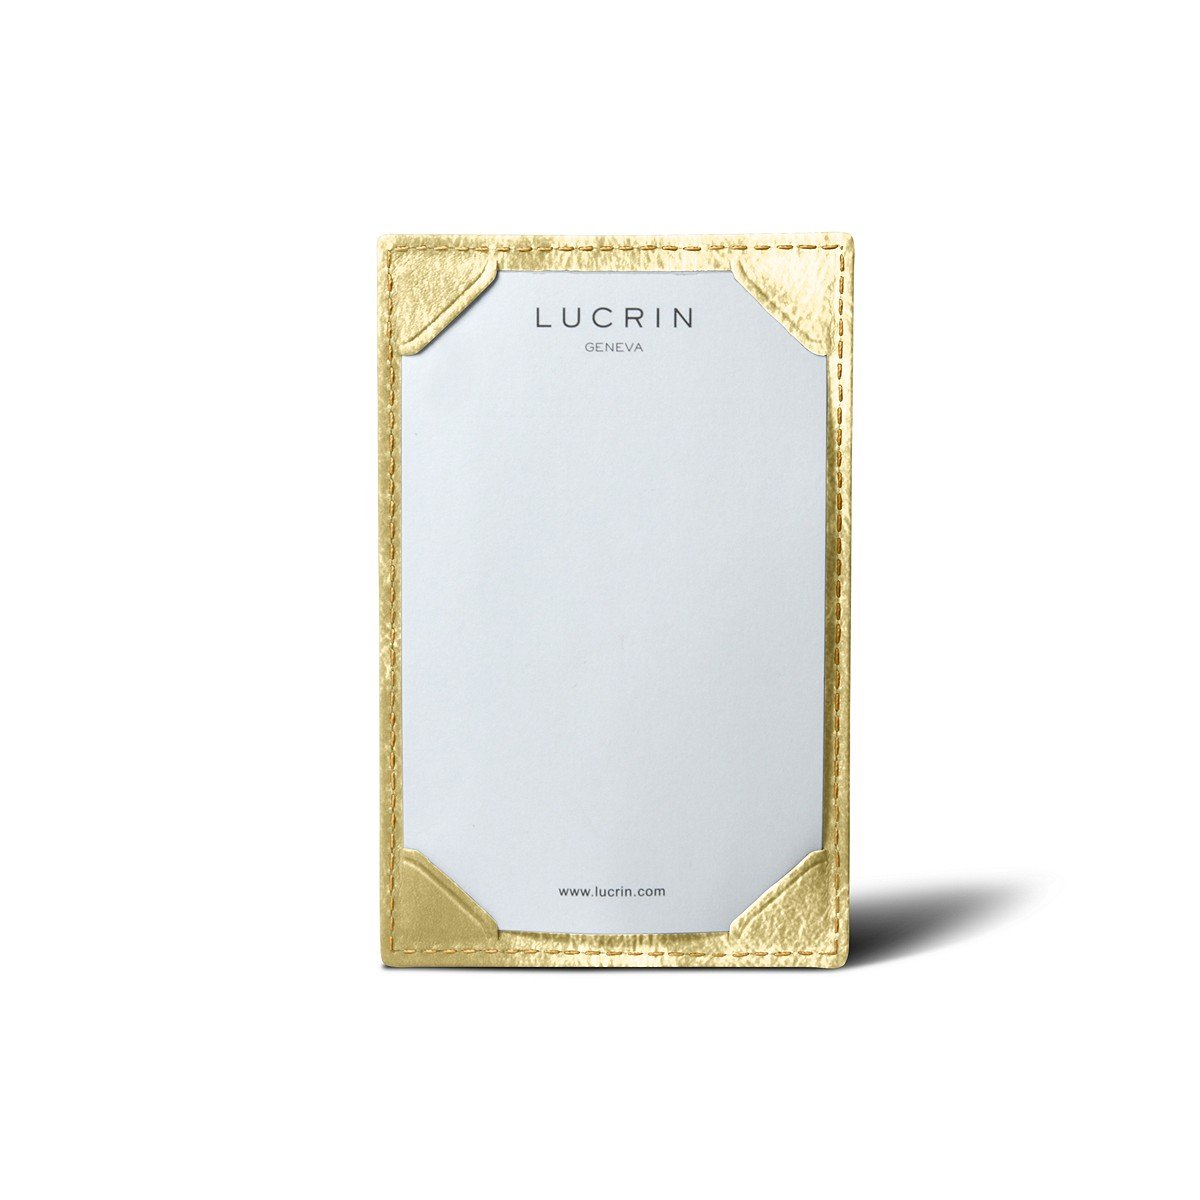 Lucrin - Small Writing Pad (4.3 x 2.8 inches) - Golden - Metallic Leather